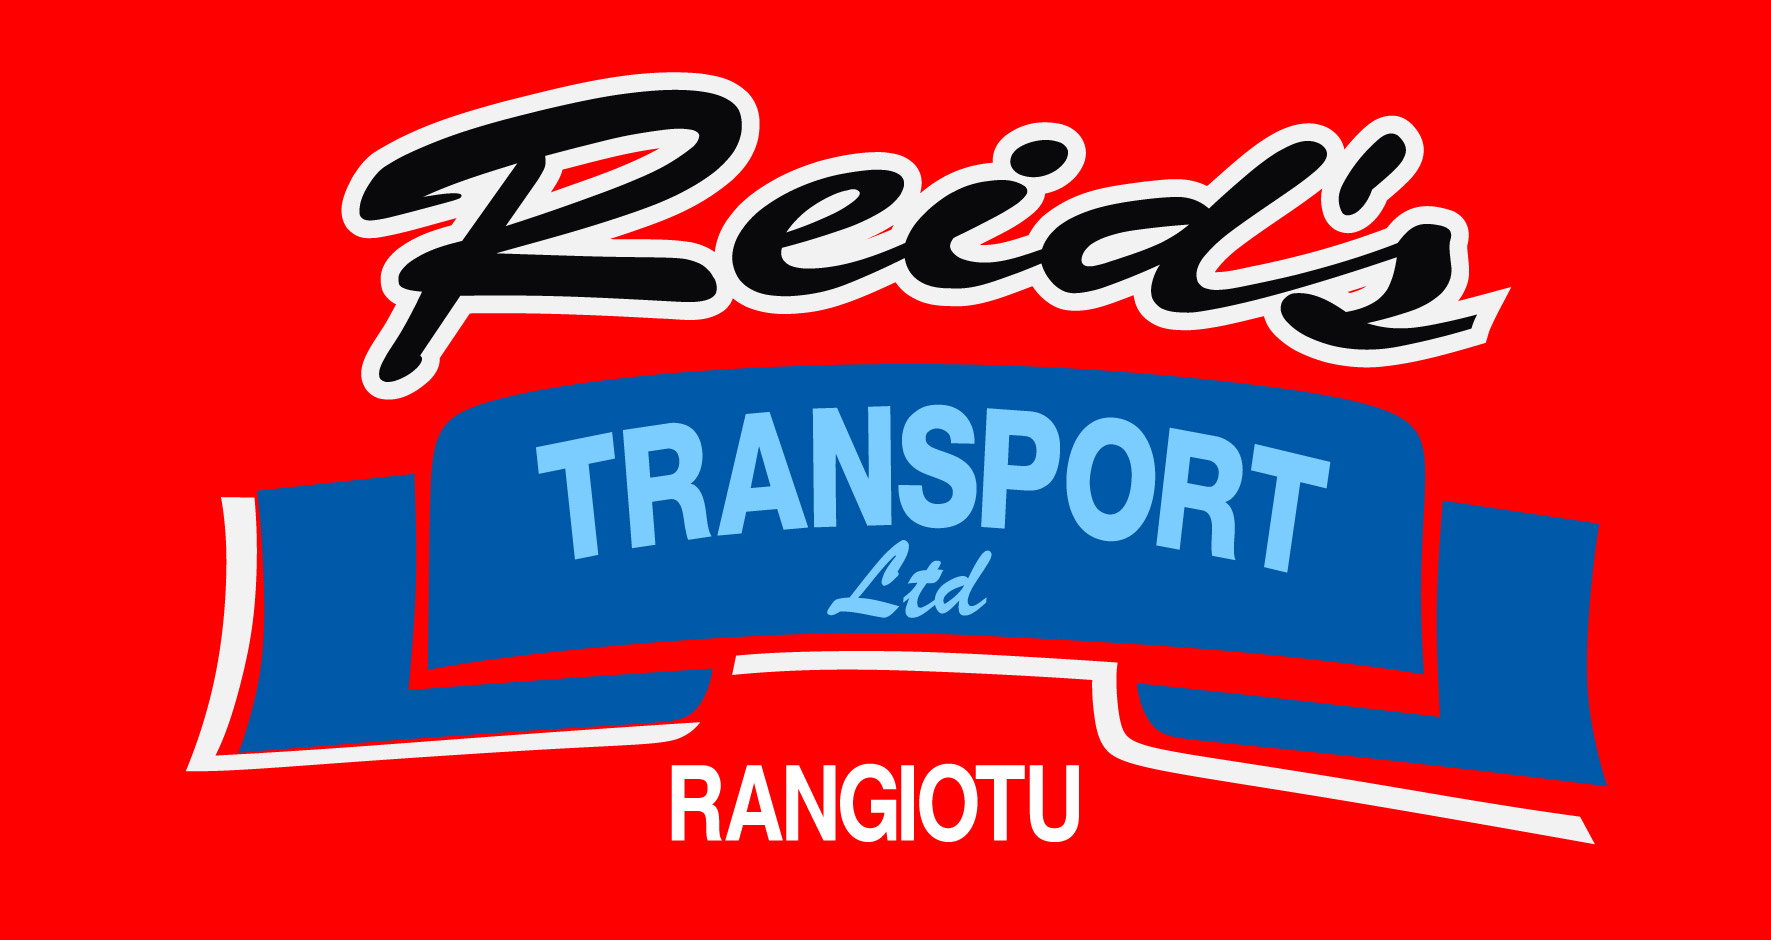 reidstransport